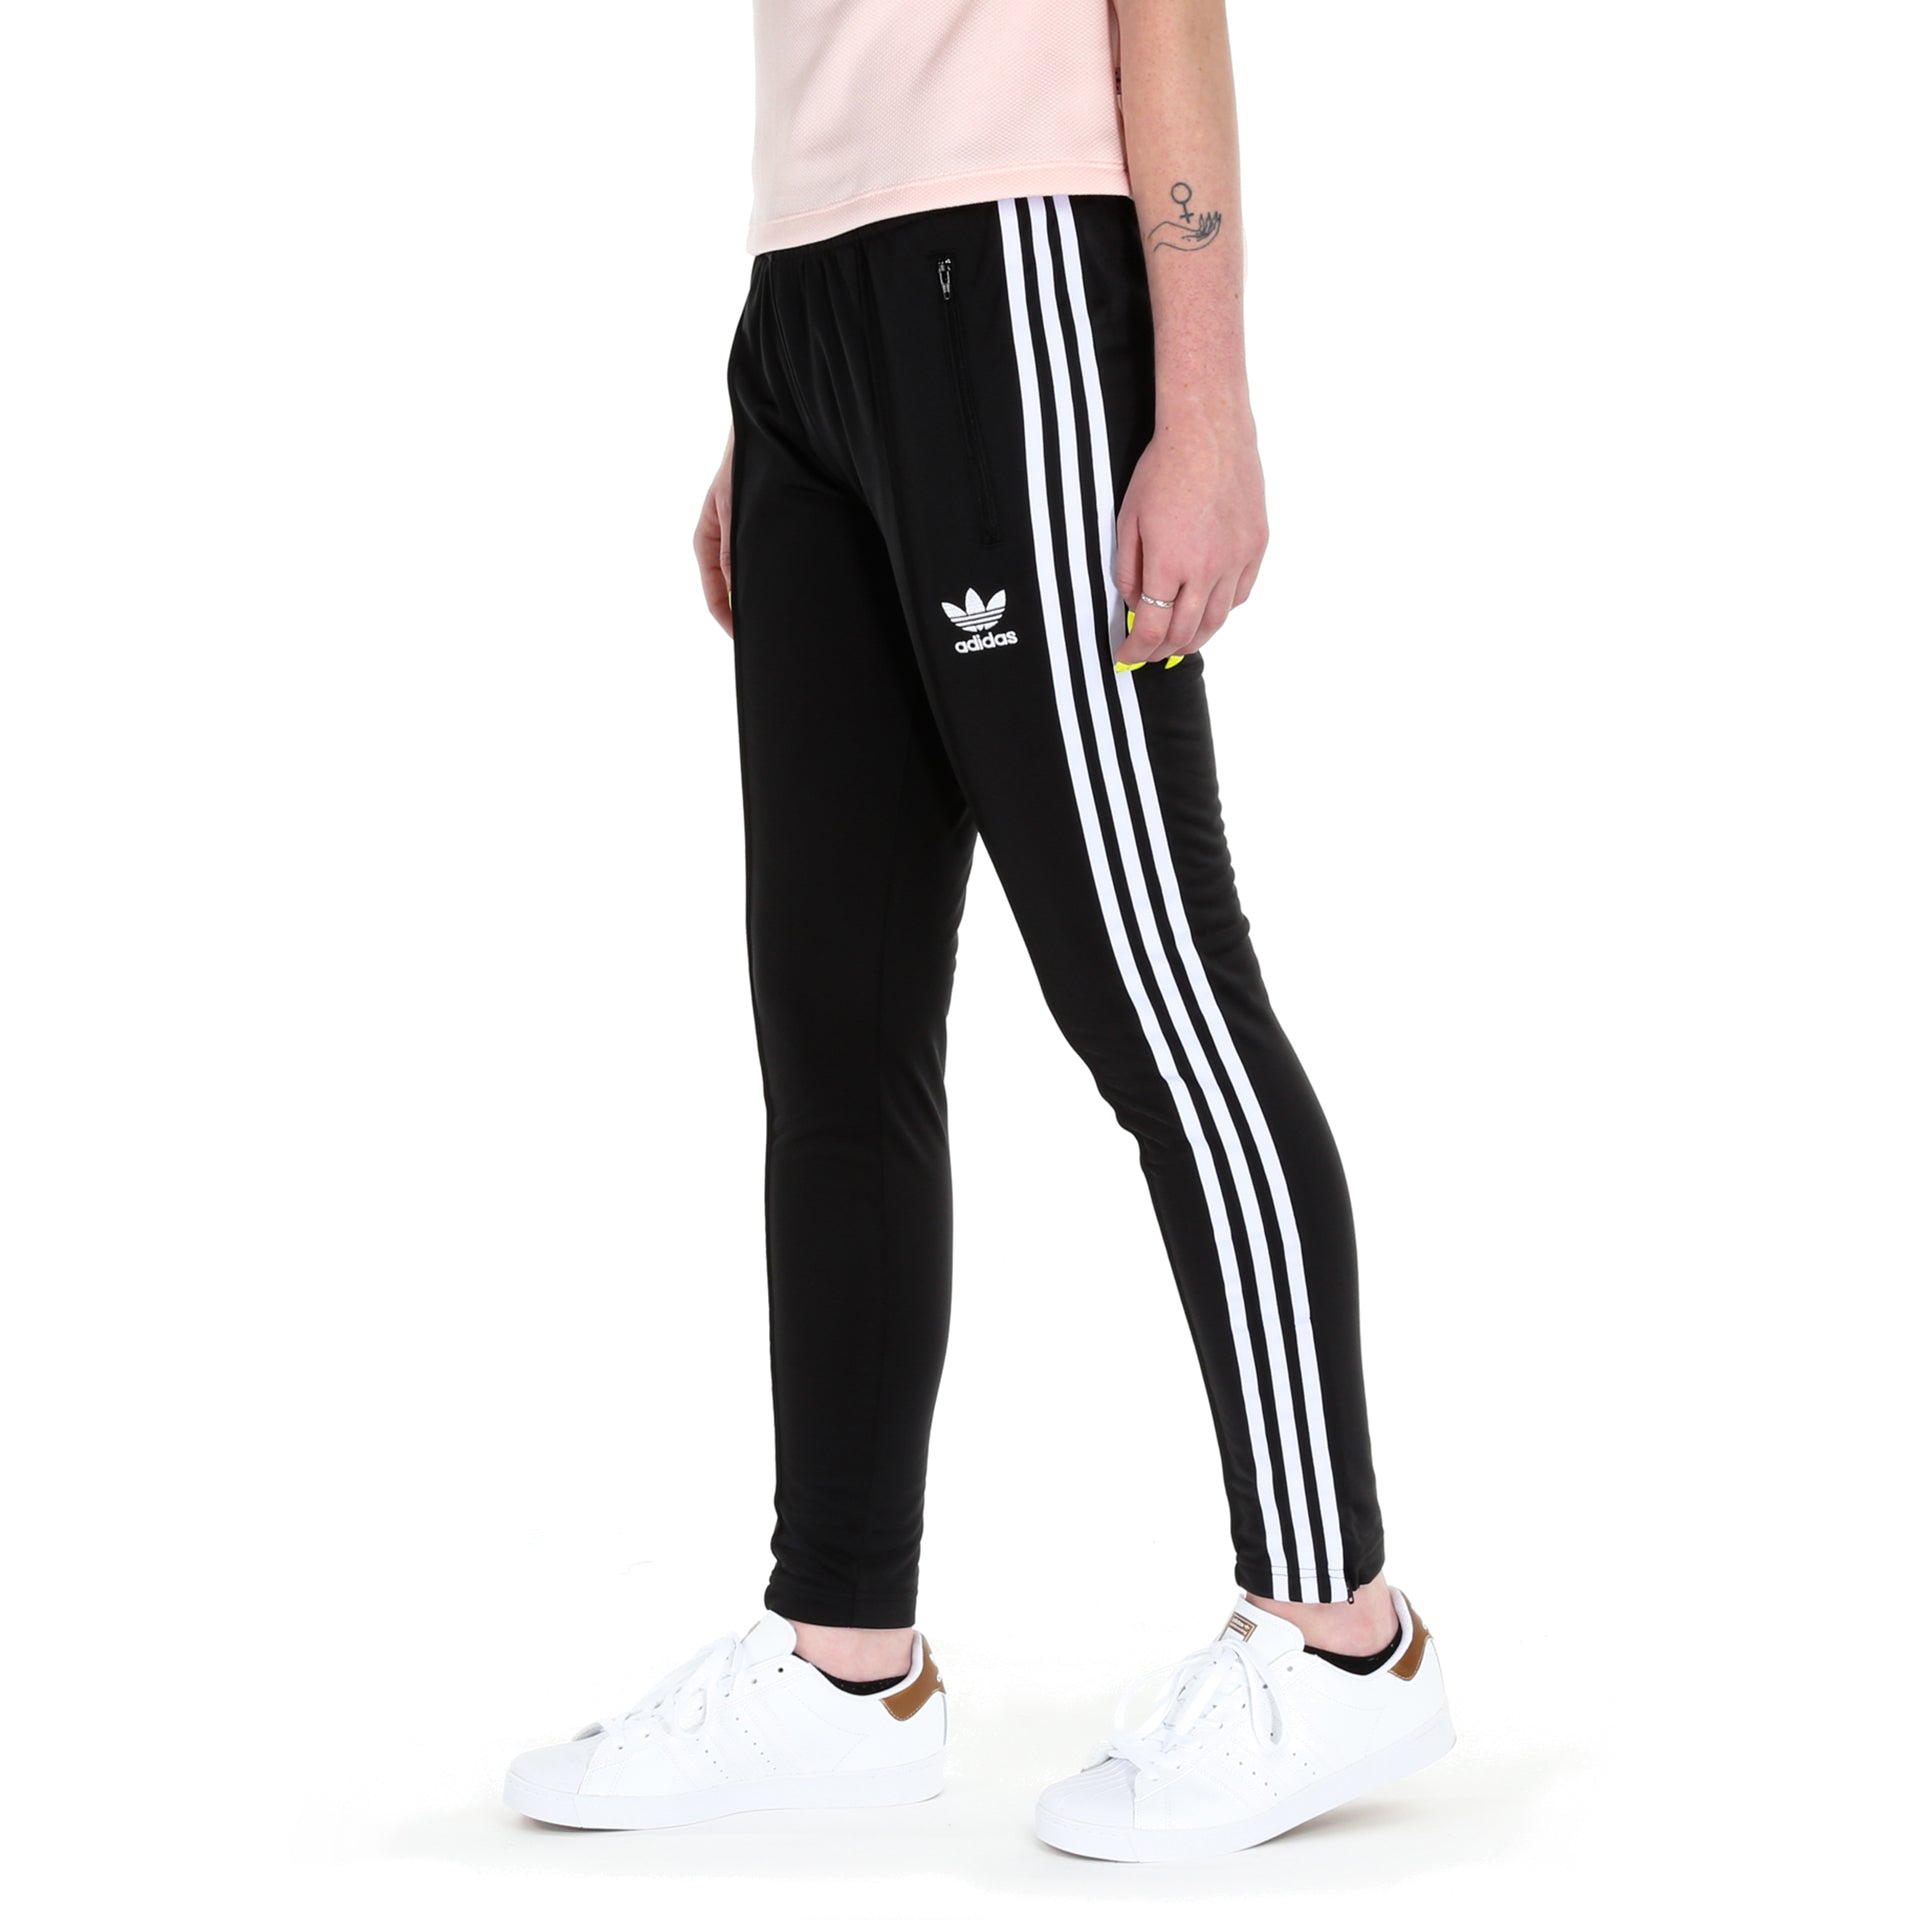 the best attitude 64a29 f5614 Adidas Superstar Track Pants - Black